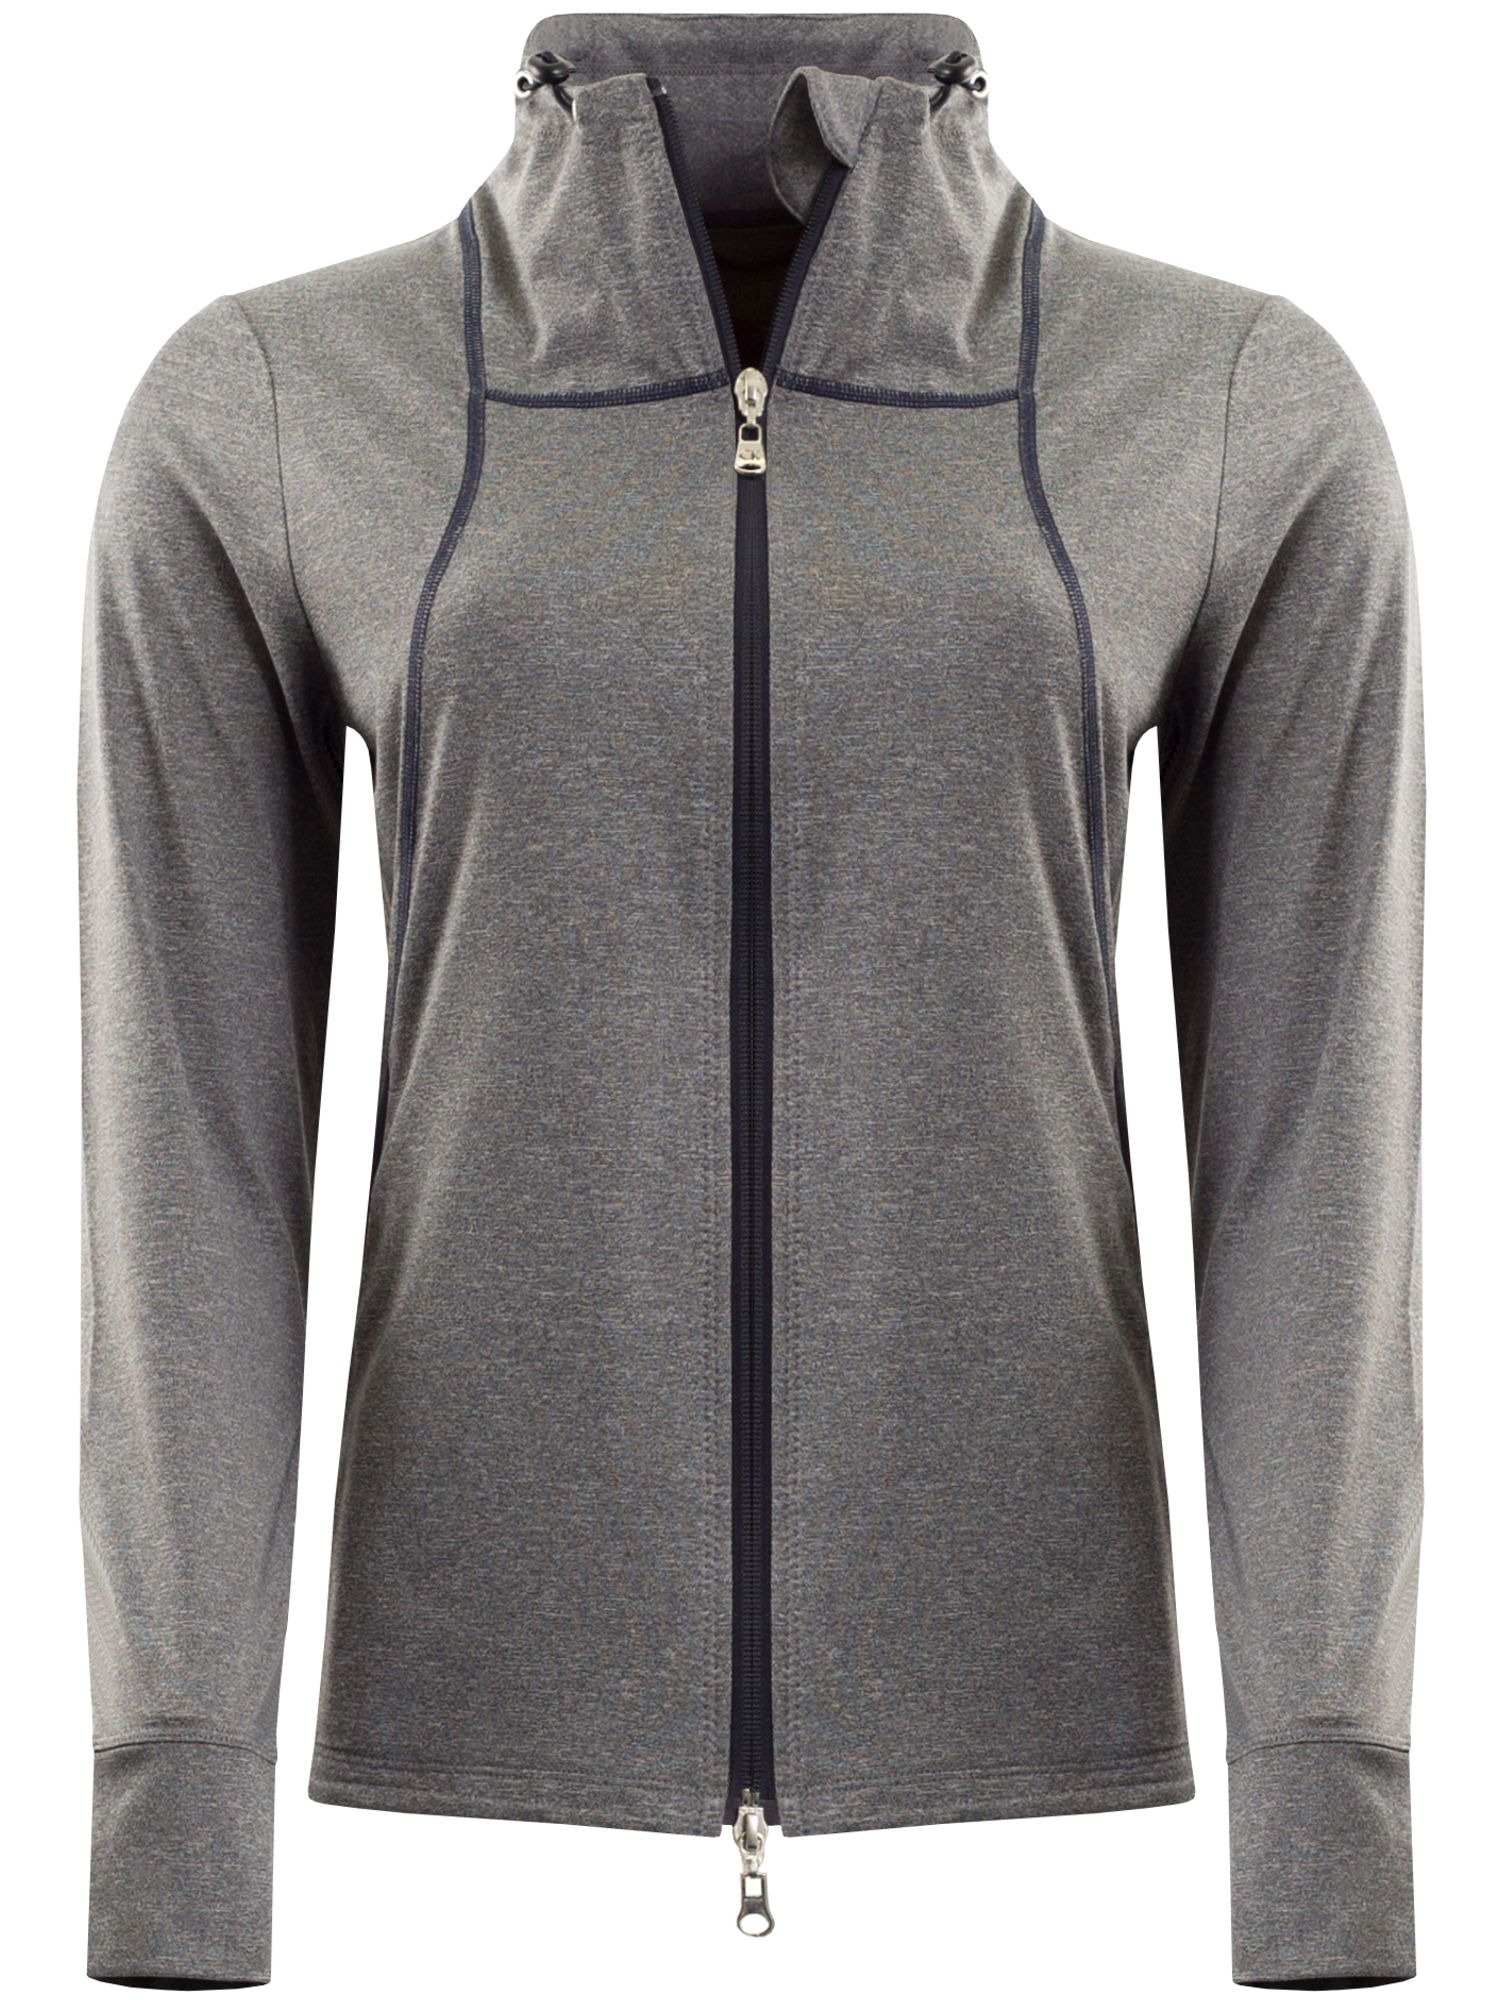 Calvin Klein Golf Aerial Tech Jacket, Grey